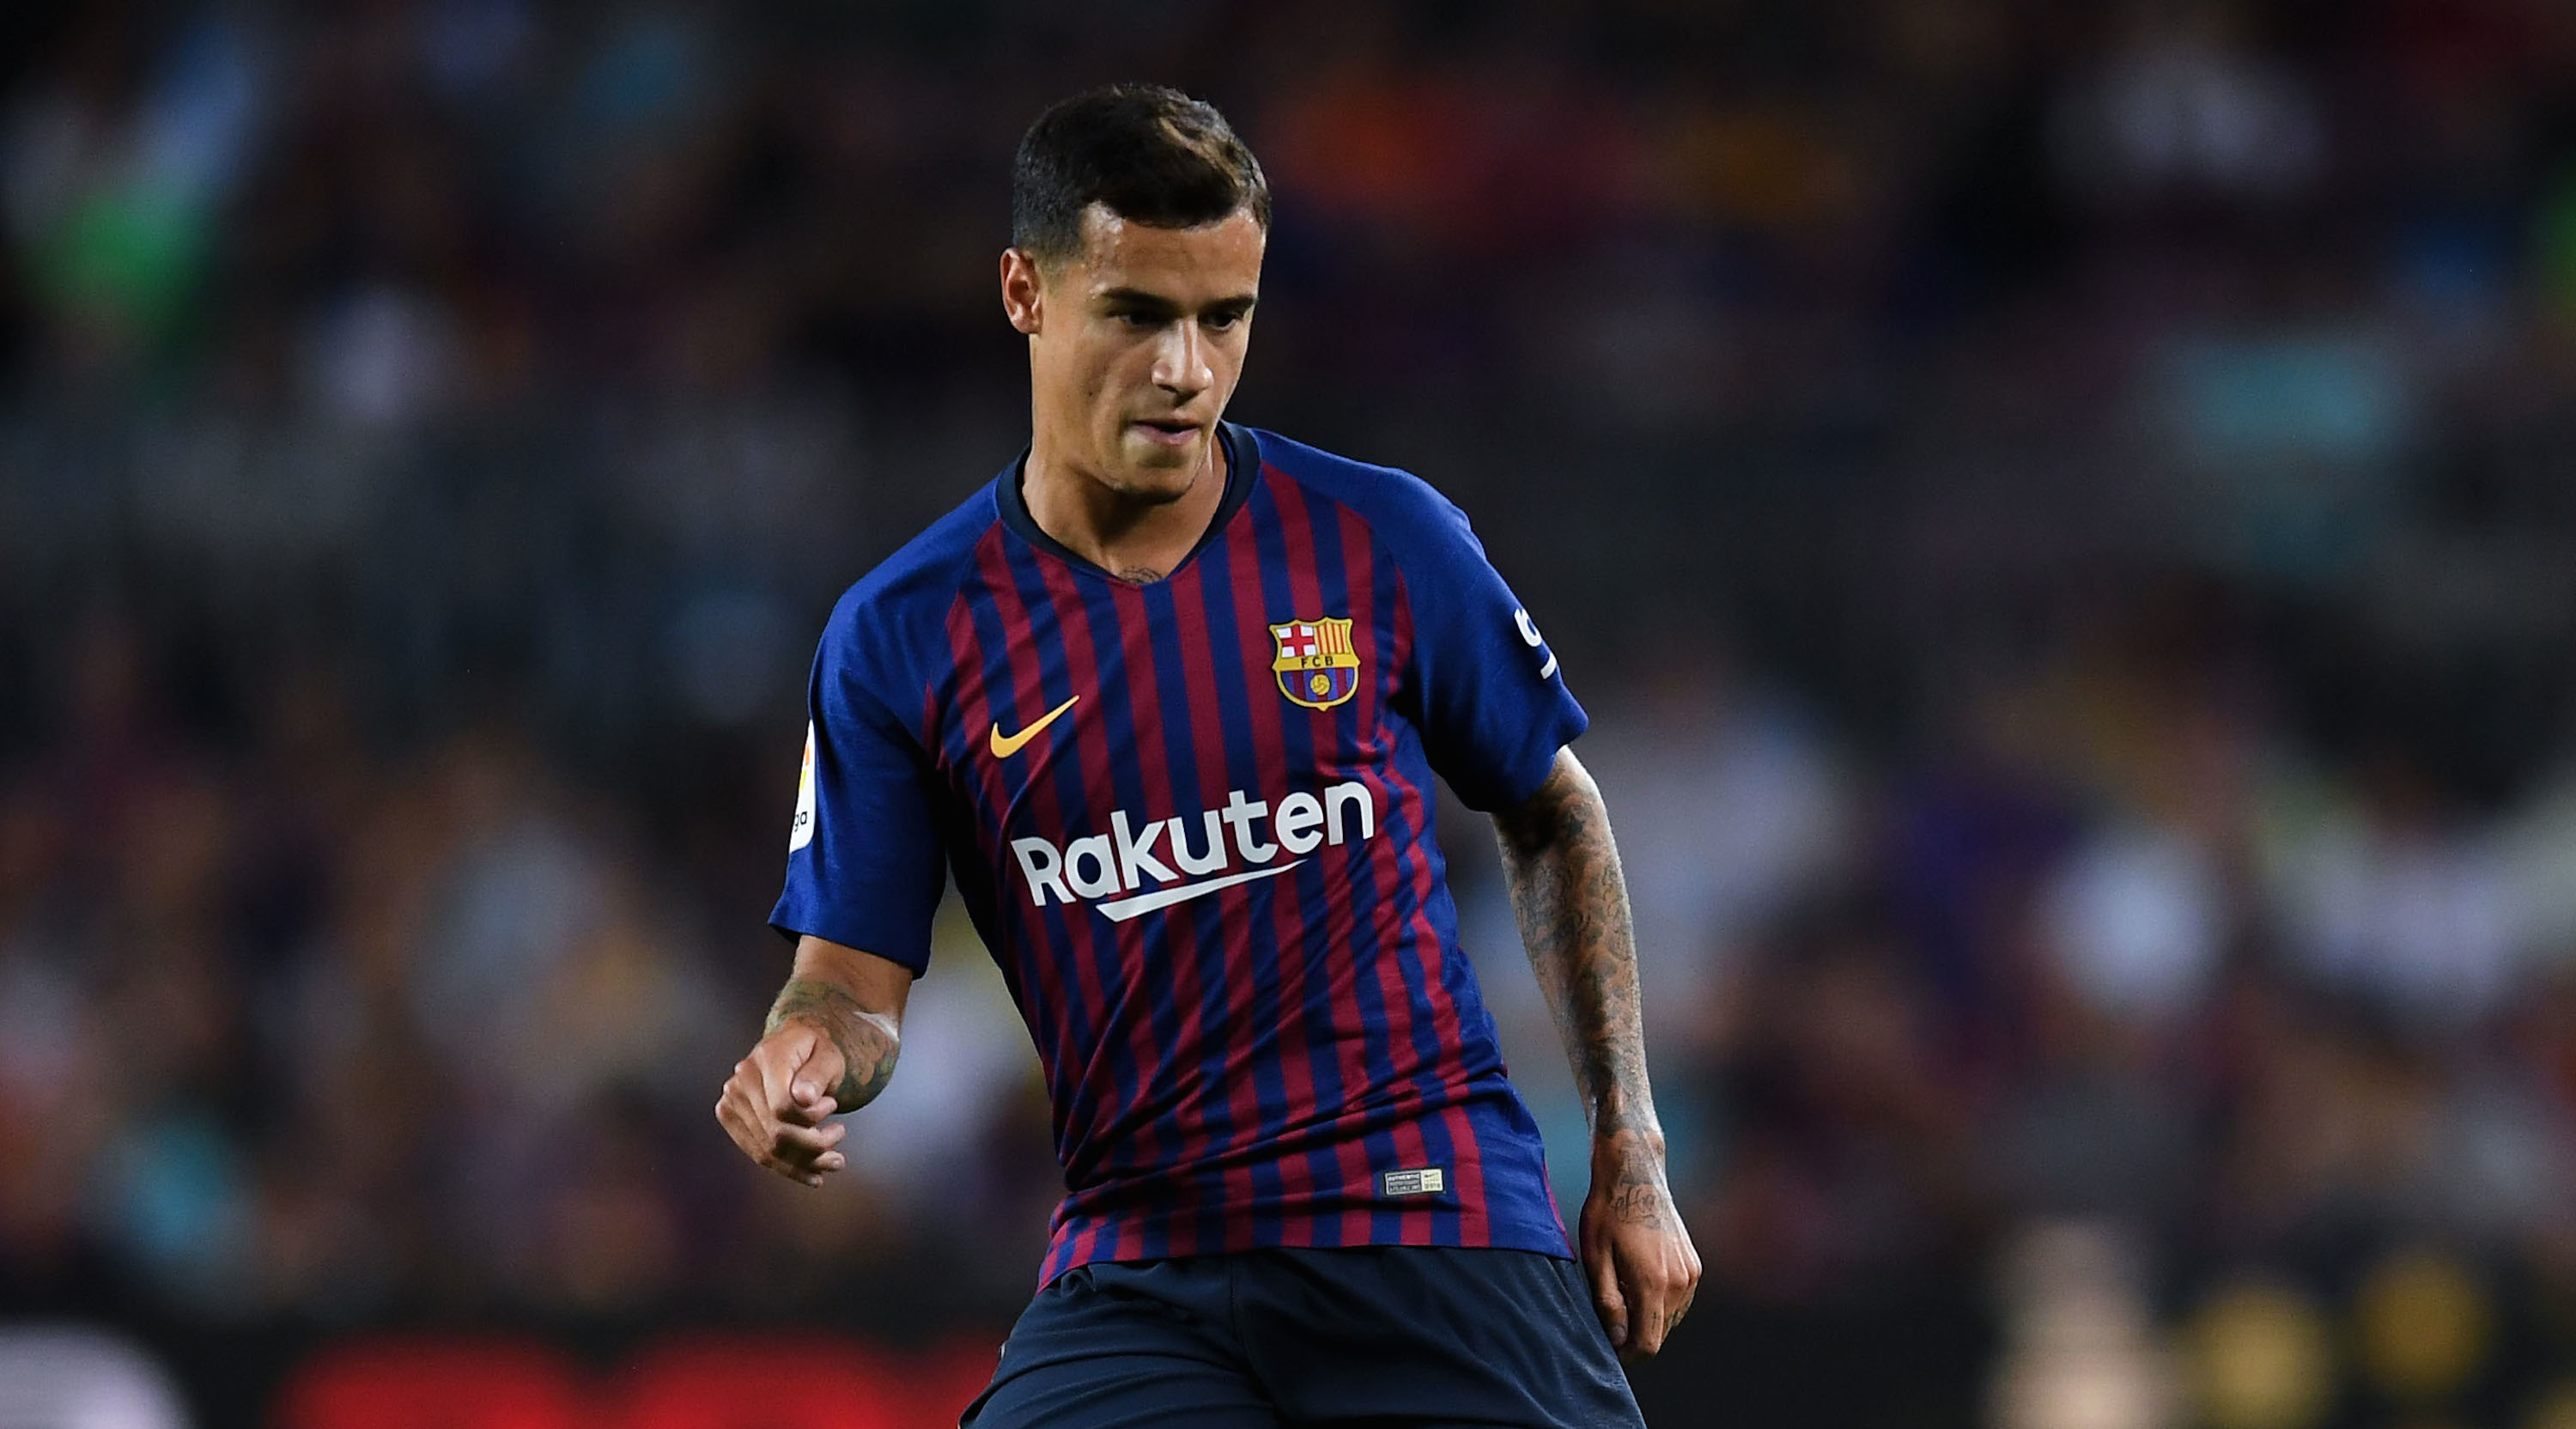 BARCELONA, SPAIN - AUGUST 18: Philippe Coutinho of FC Barcelona runs with the ball during the La Liga match between FC Barcelona and Deportivo Alaves at Camp Nou on August 18, 2018 in Barcelona, Spain. (Photo by David Ramos/Getty Images)